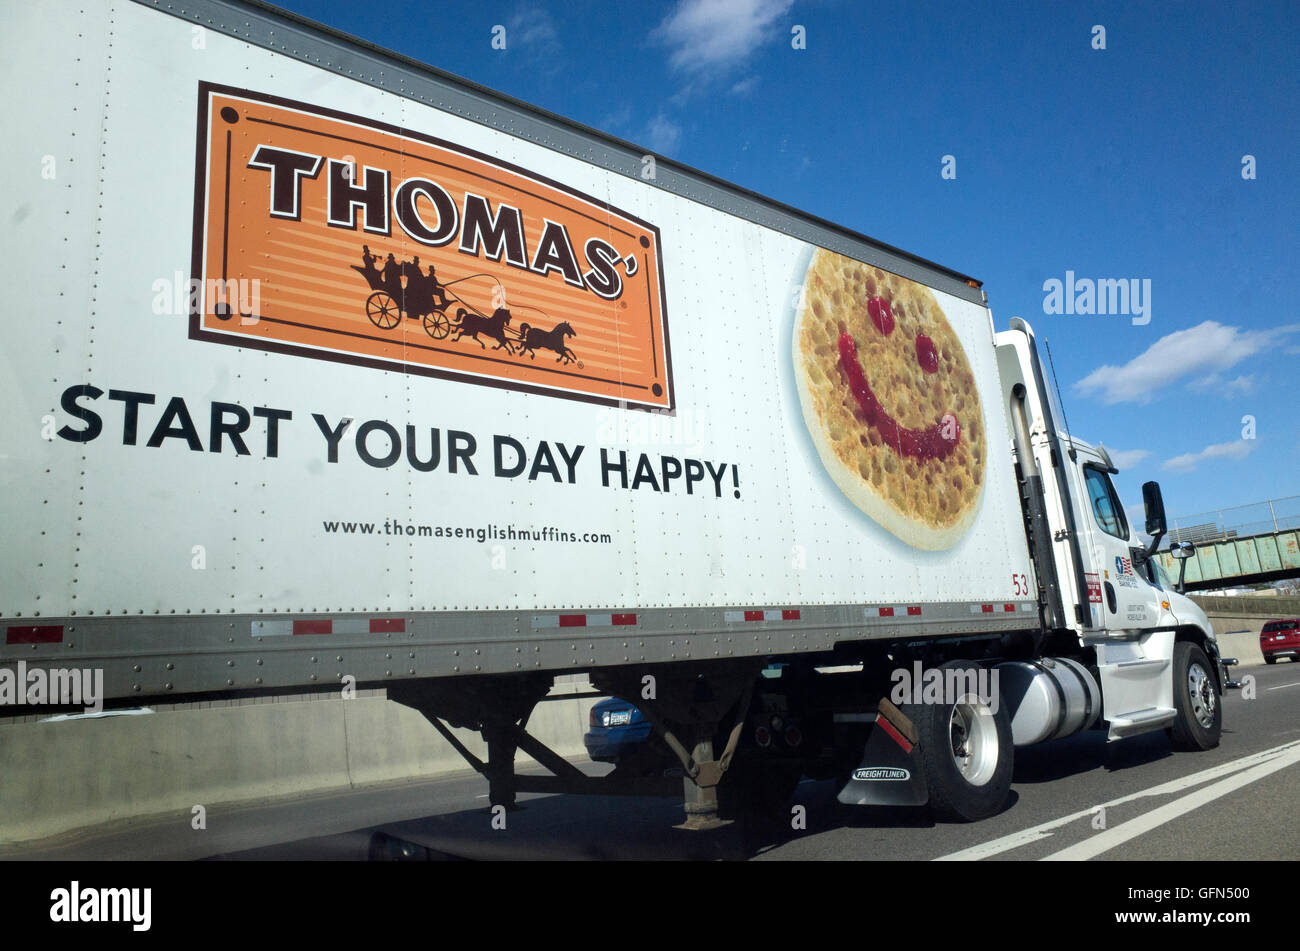 Grinning face emoji on side of Thomas 16 wheel semi truck with the motto: 'Start your day happy'. Minneapolis - Stock Image